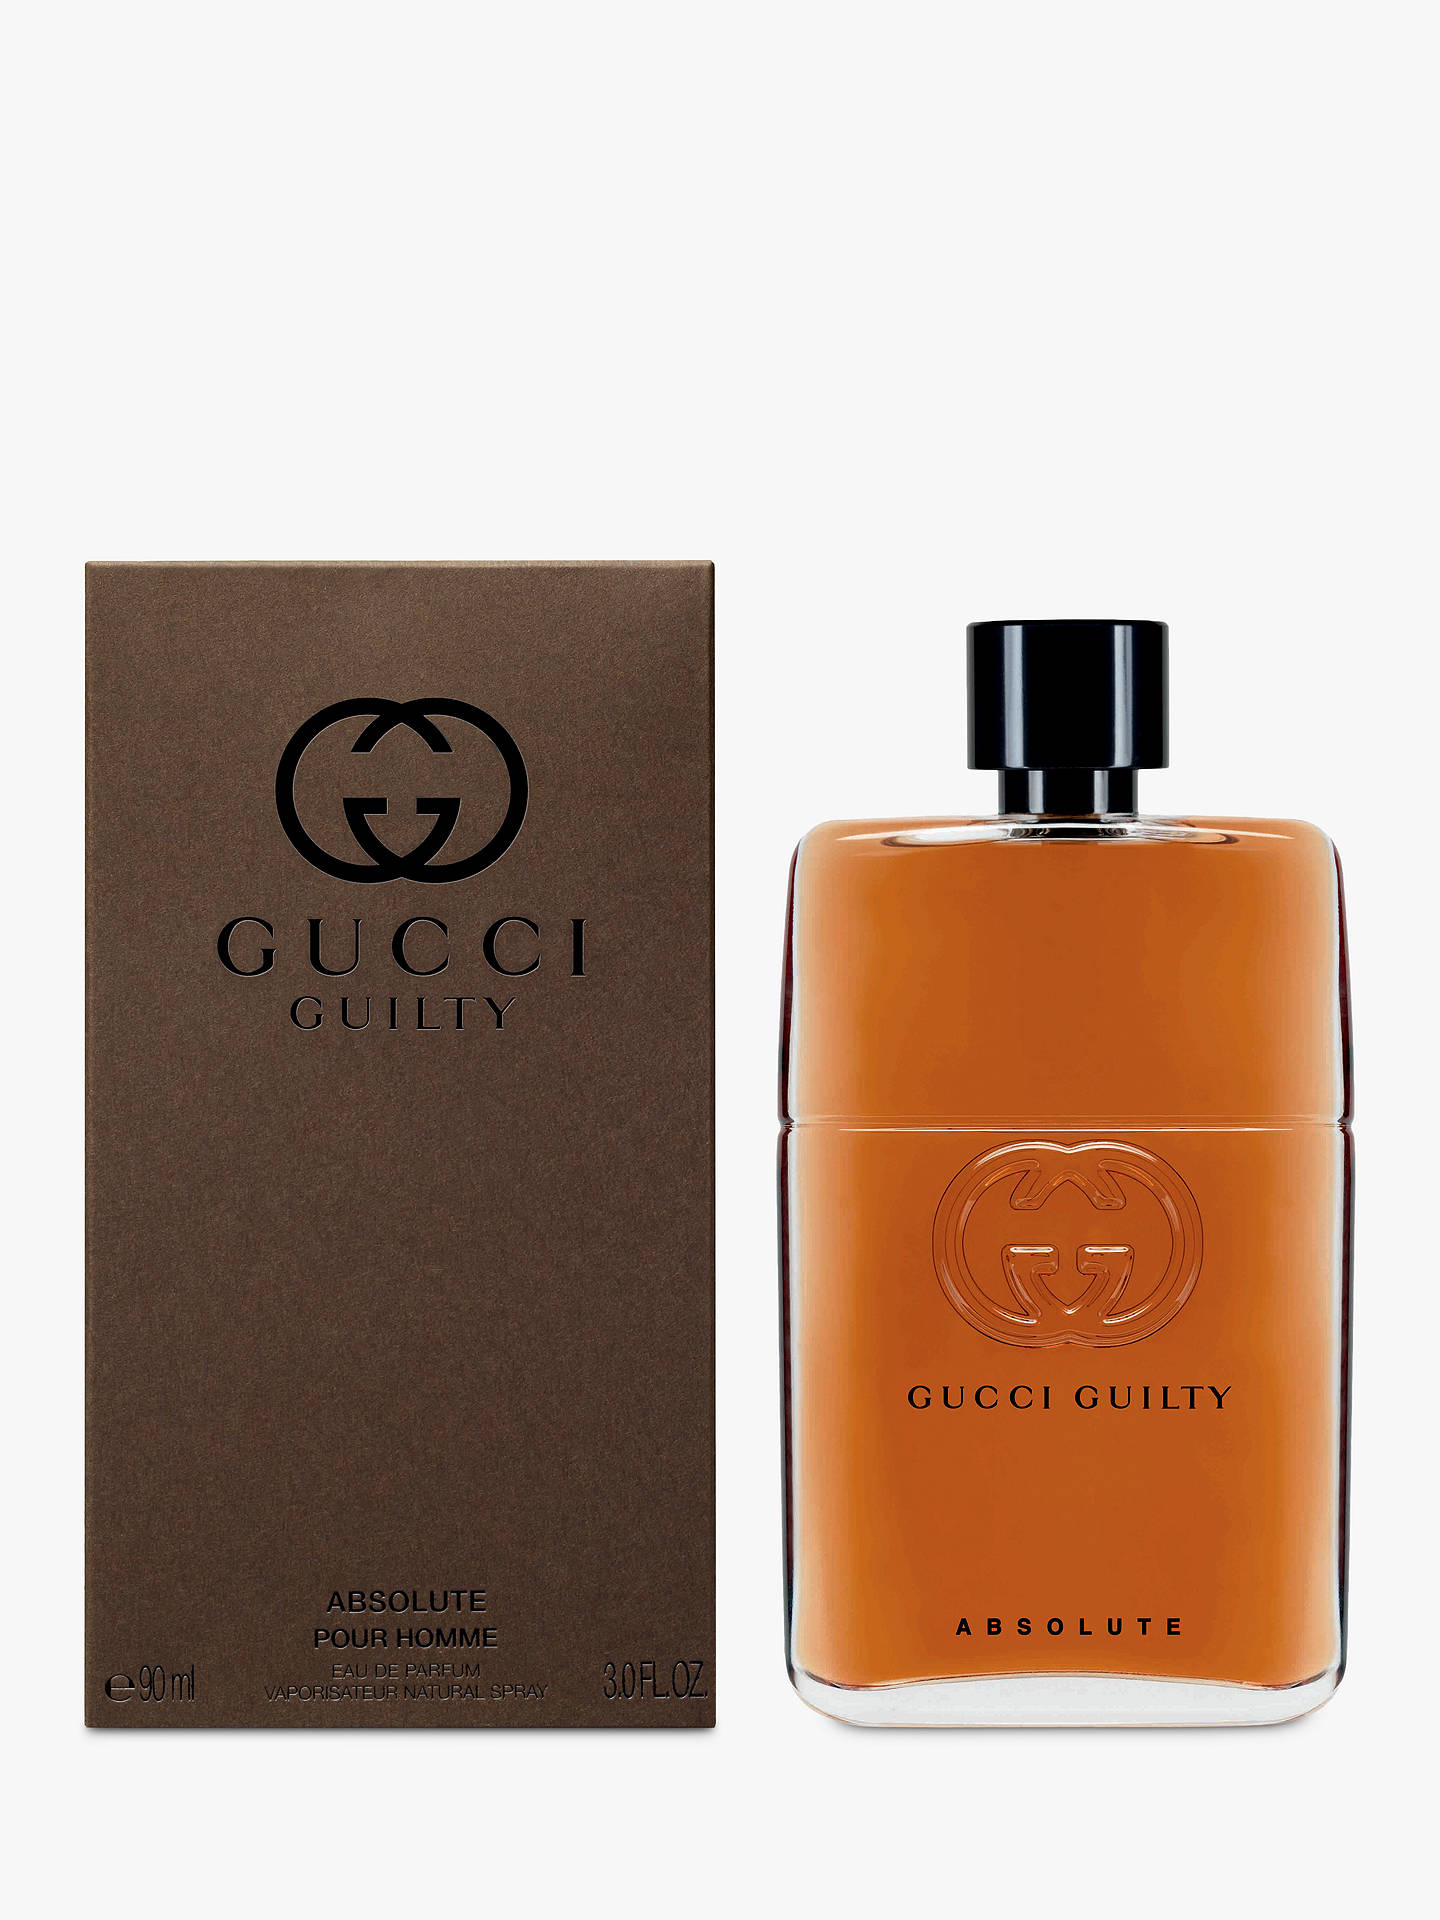 Buy Gucci Guilty Absolute Eau de Parfum for Him, 90ml Online at johnlewis.com